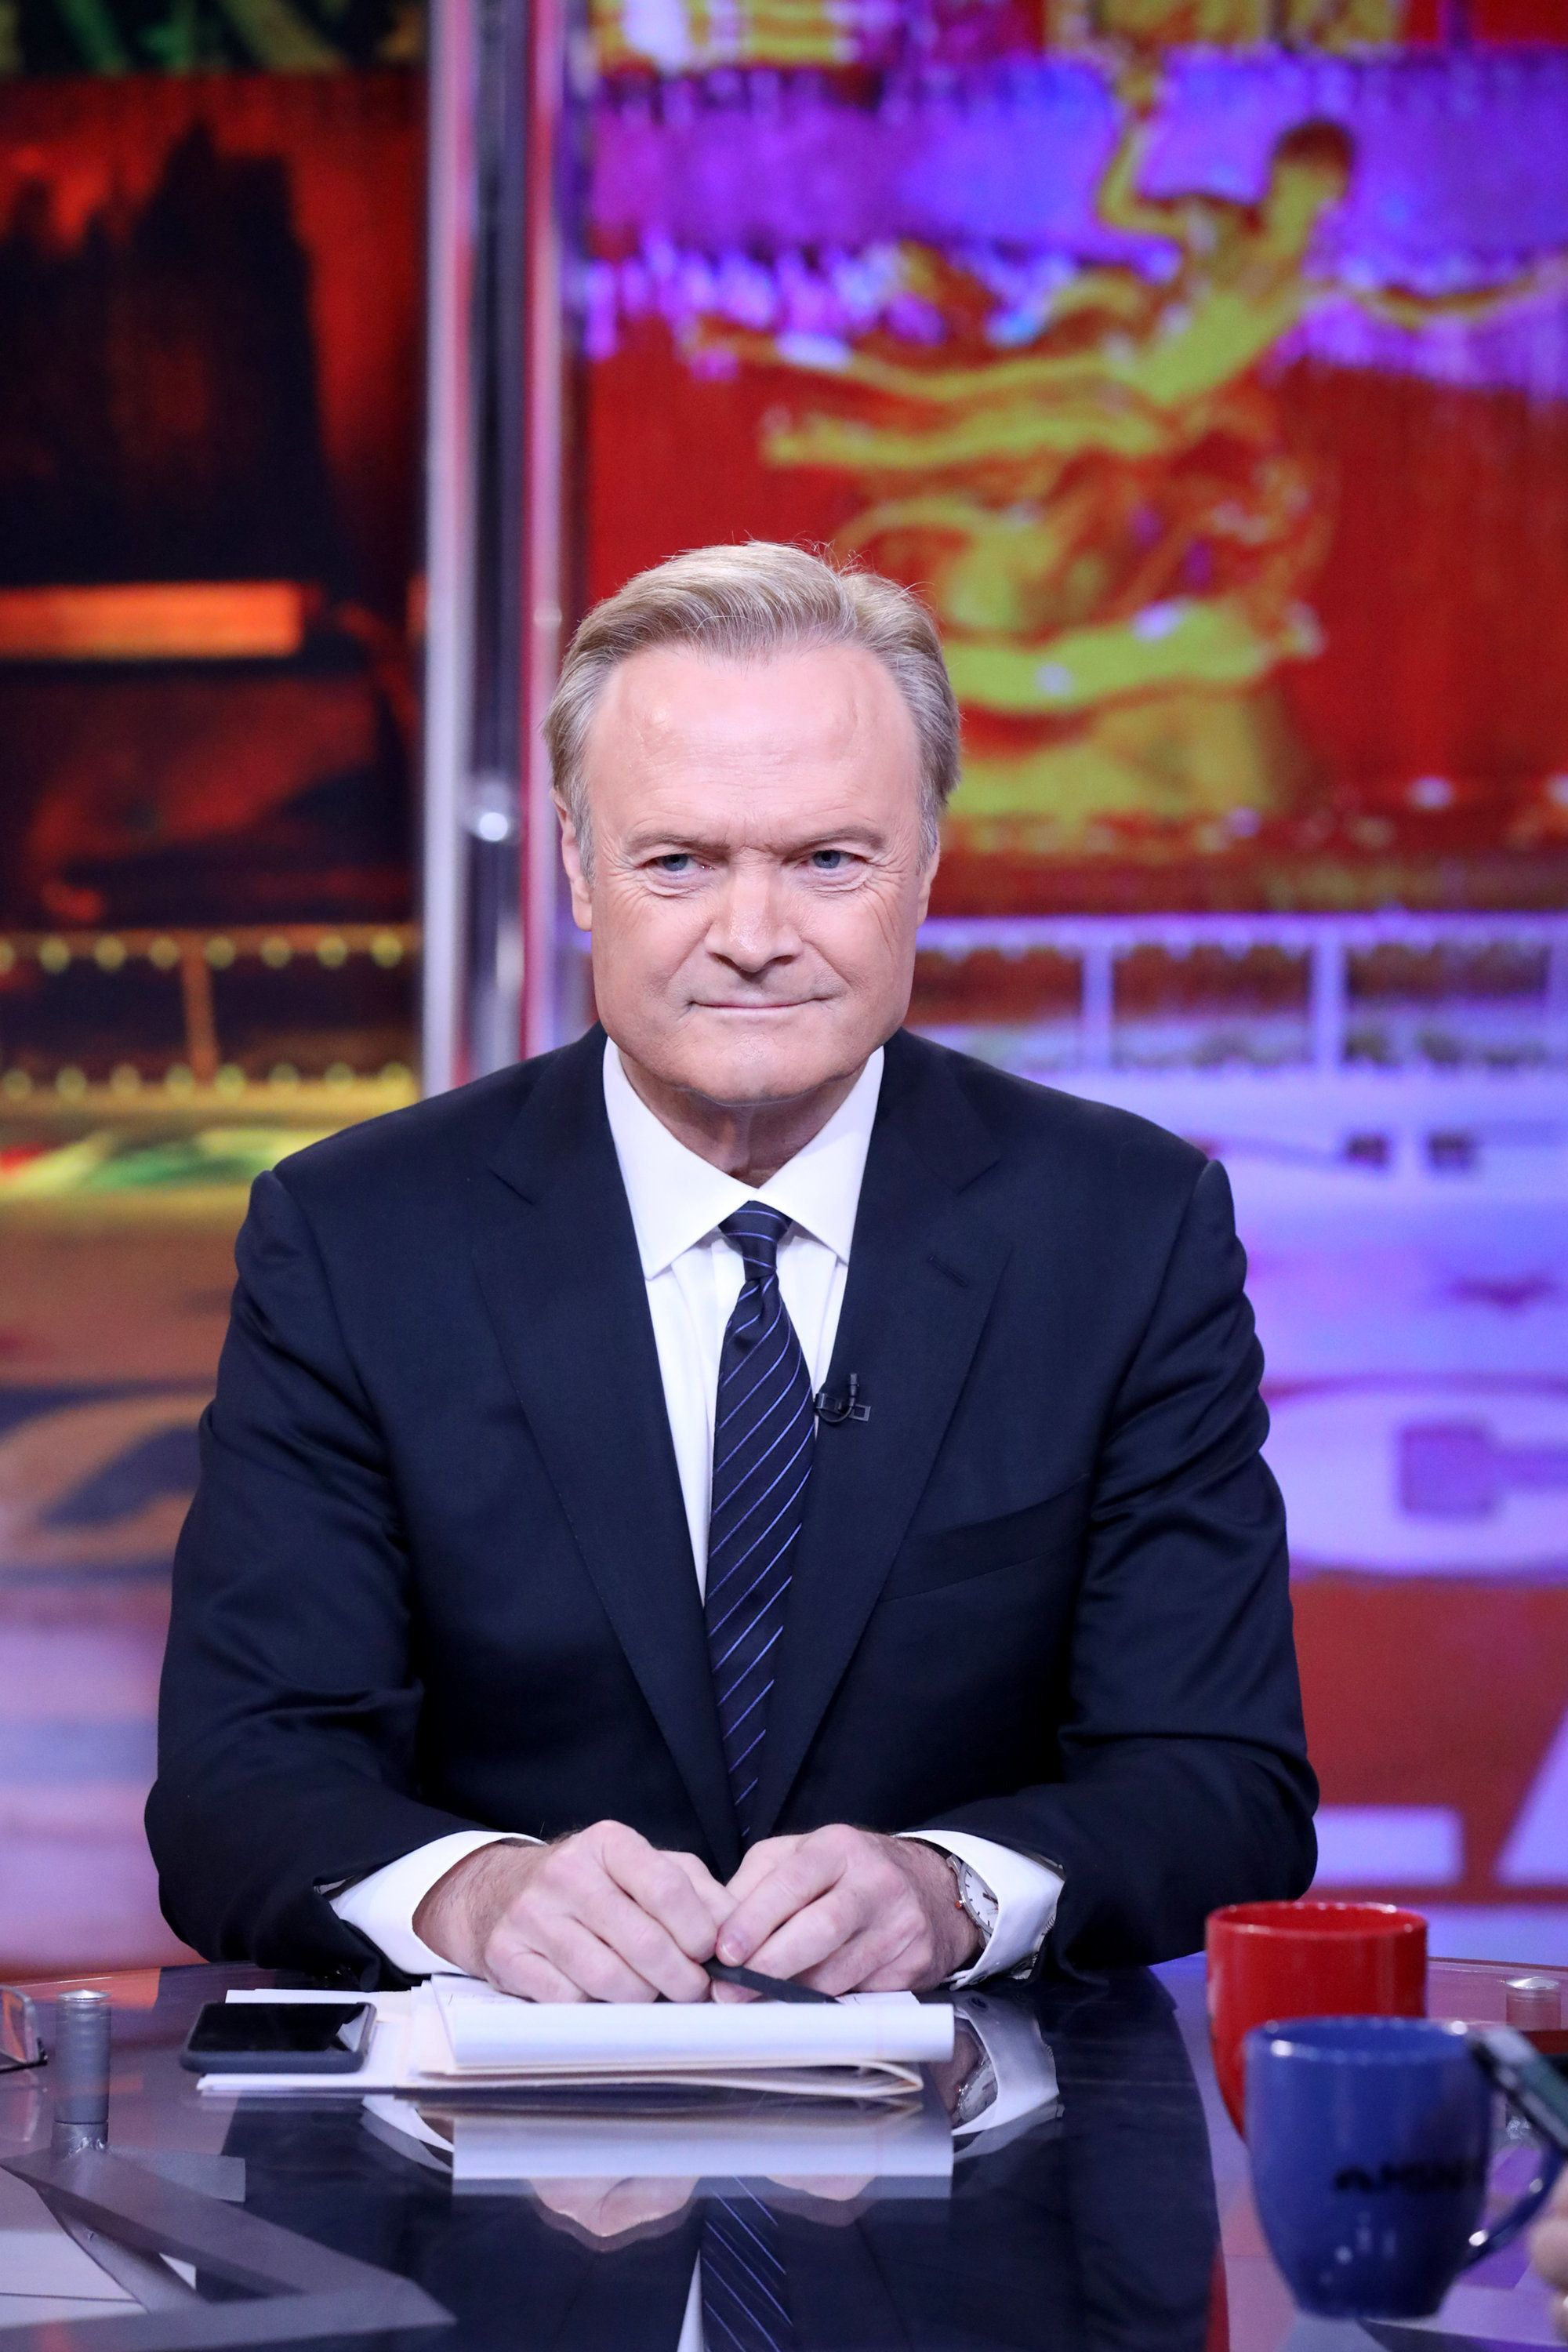 MSNBC - ELECTION COVERAGE -- Election Night 2016 -- Pictured: Lawrence O'Donnell, Host, 'The Last Word with Lawrence O'Donnell' on Tuesday, November 8, 2016 from New York -- (Photo by: Heidi Gutman/MSNBC/NBCU Photo Bank via Getty Images)